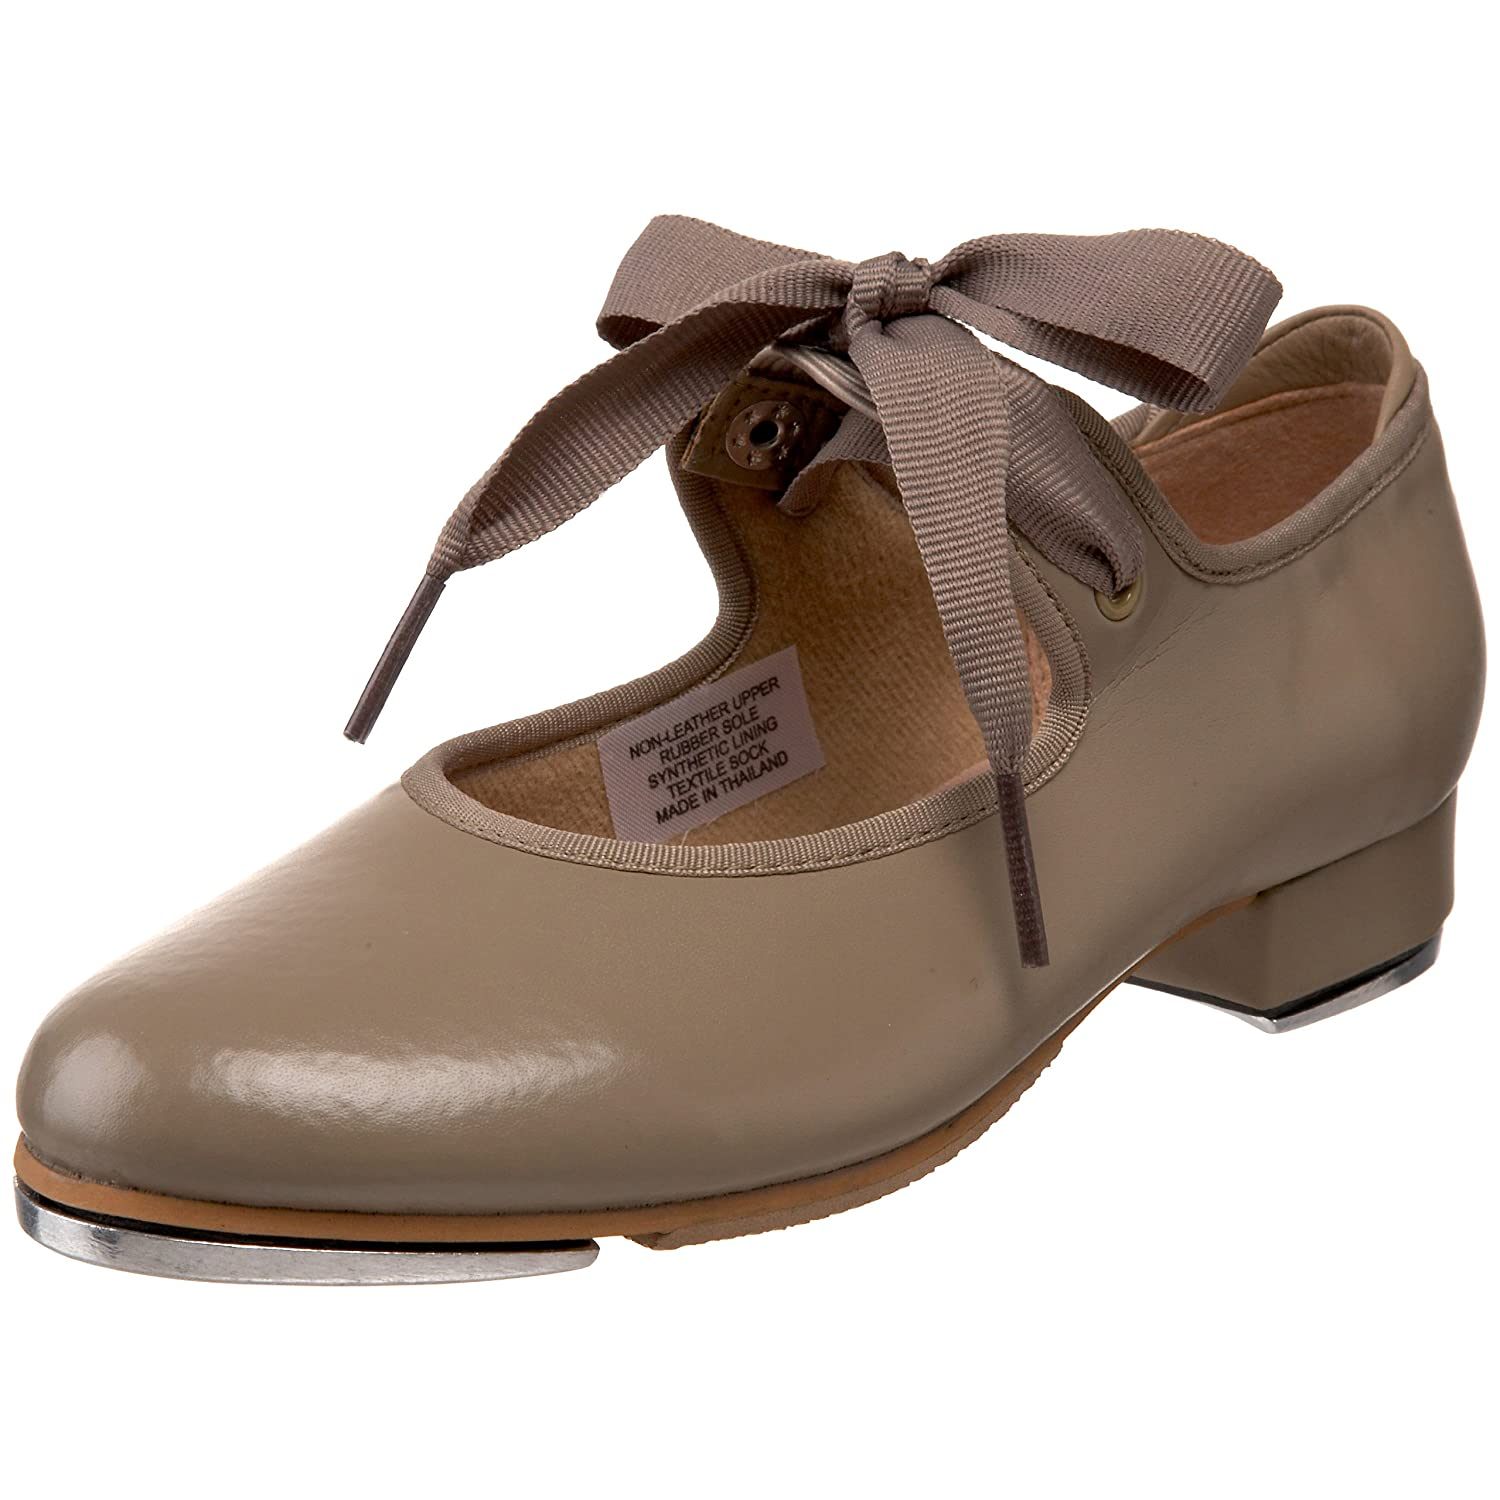 Bloch Dance Girl's Annie Tyette Tap Shoe S0350G